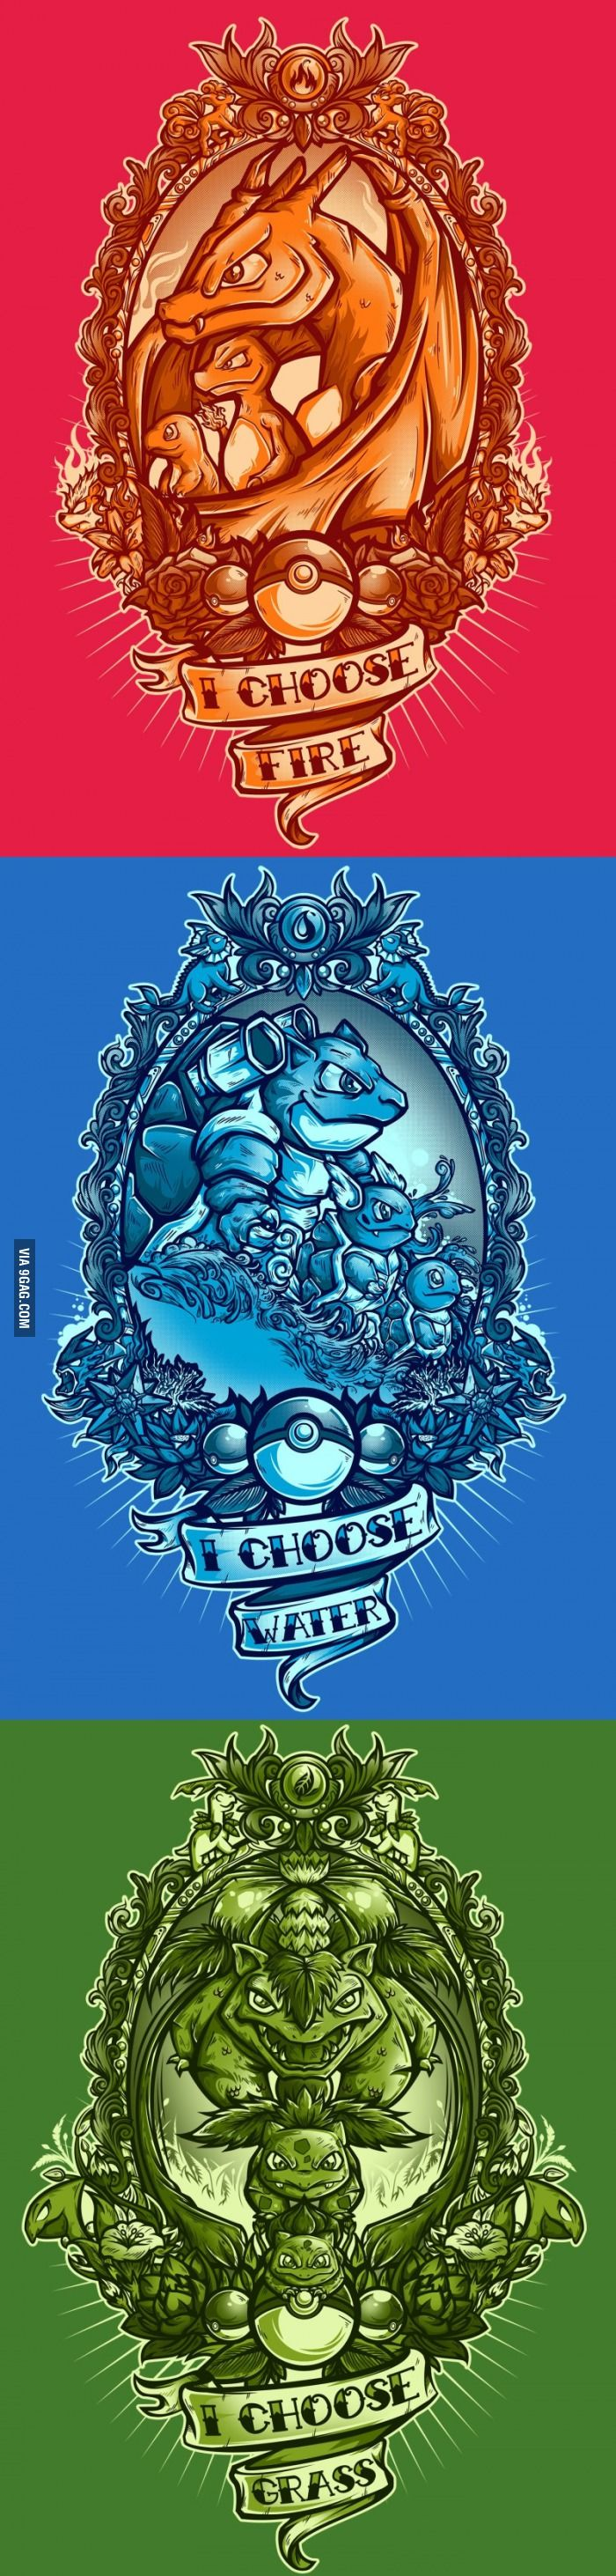 I choose grass and you? - 9GAG